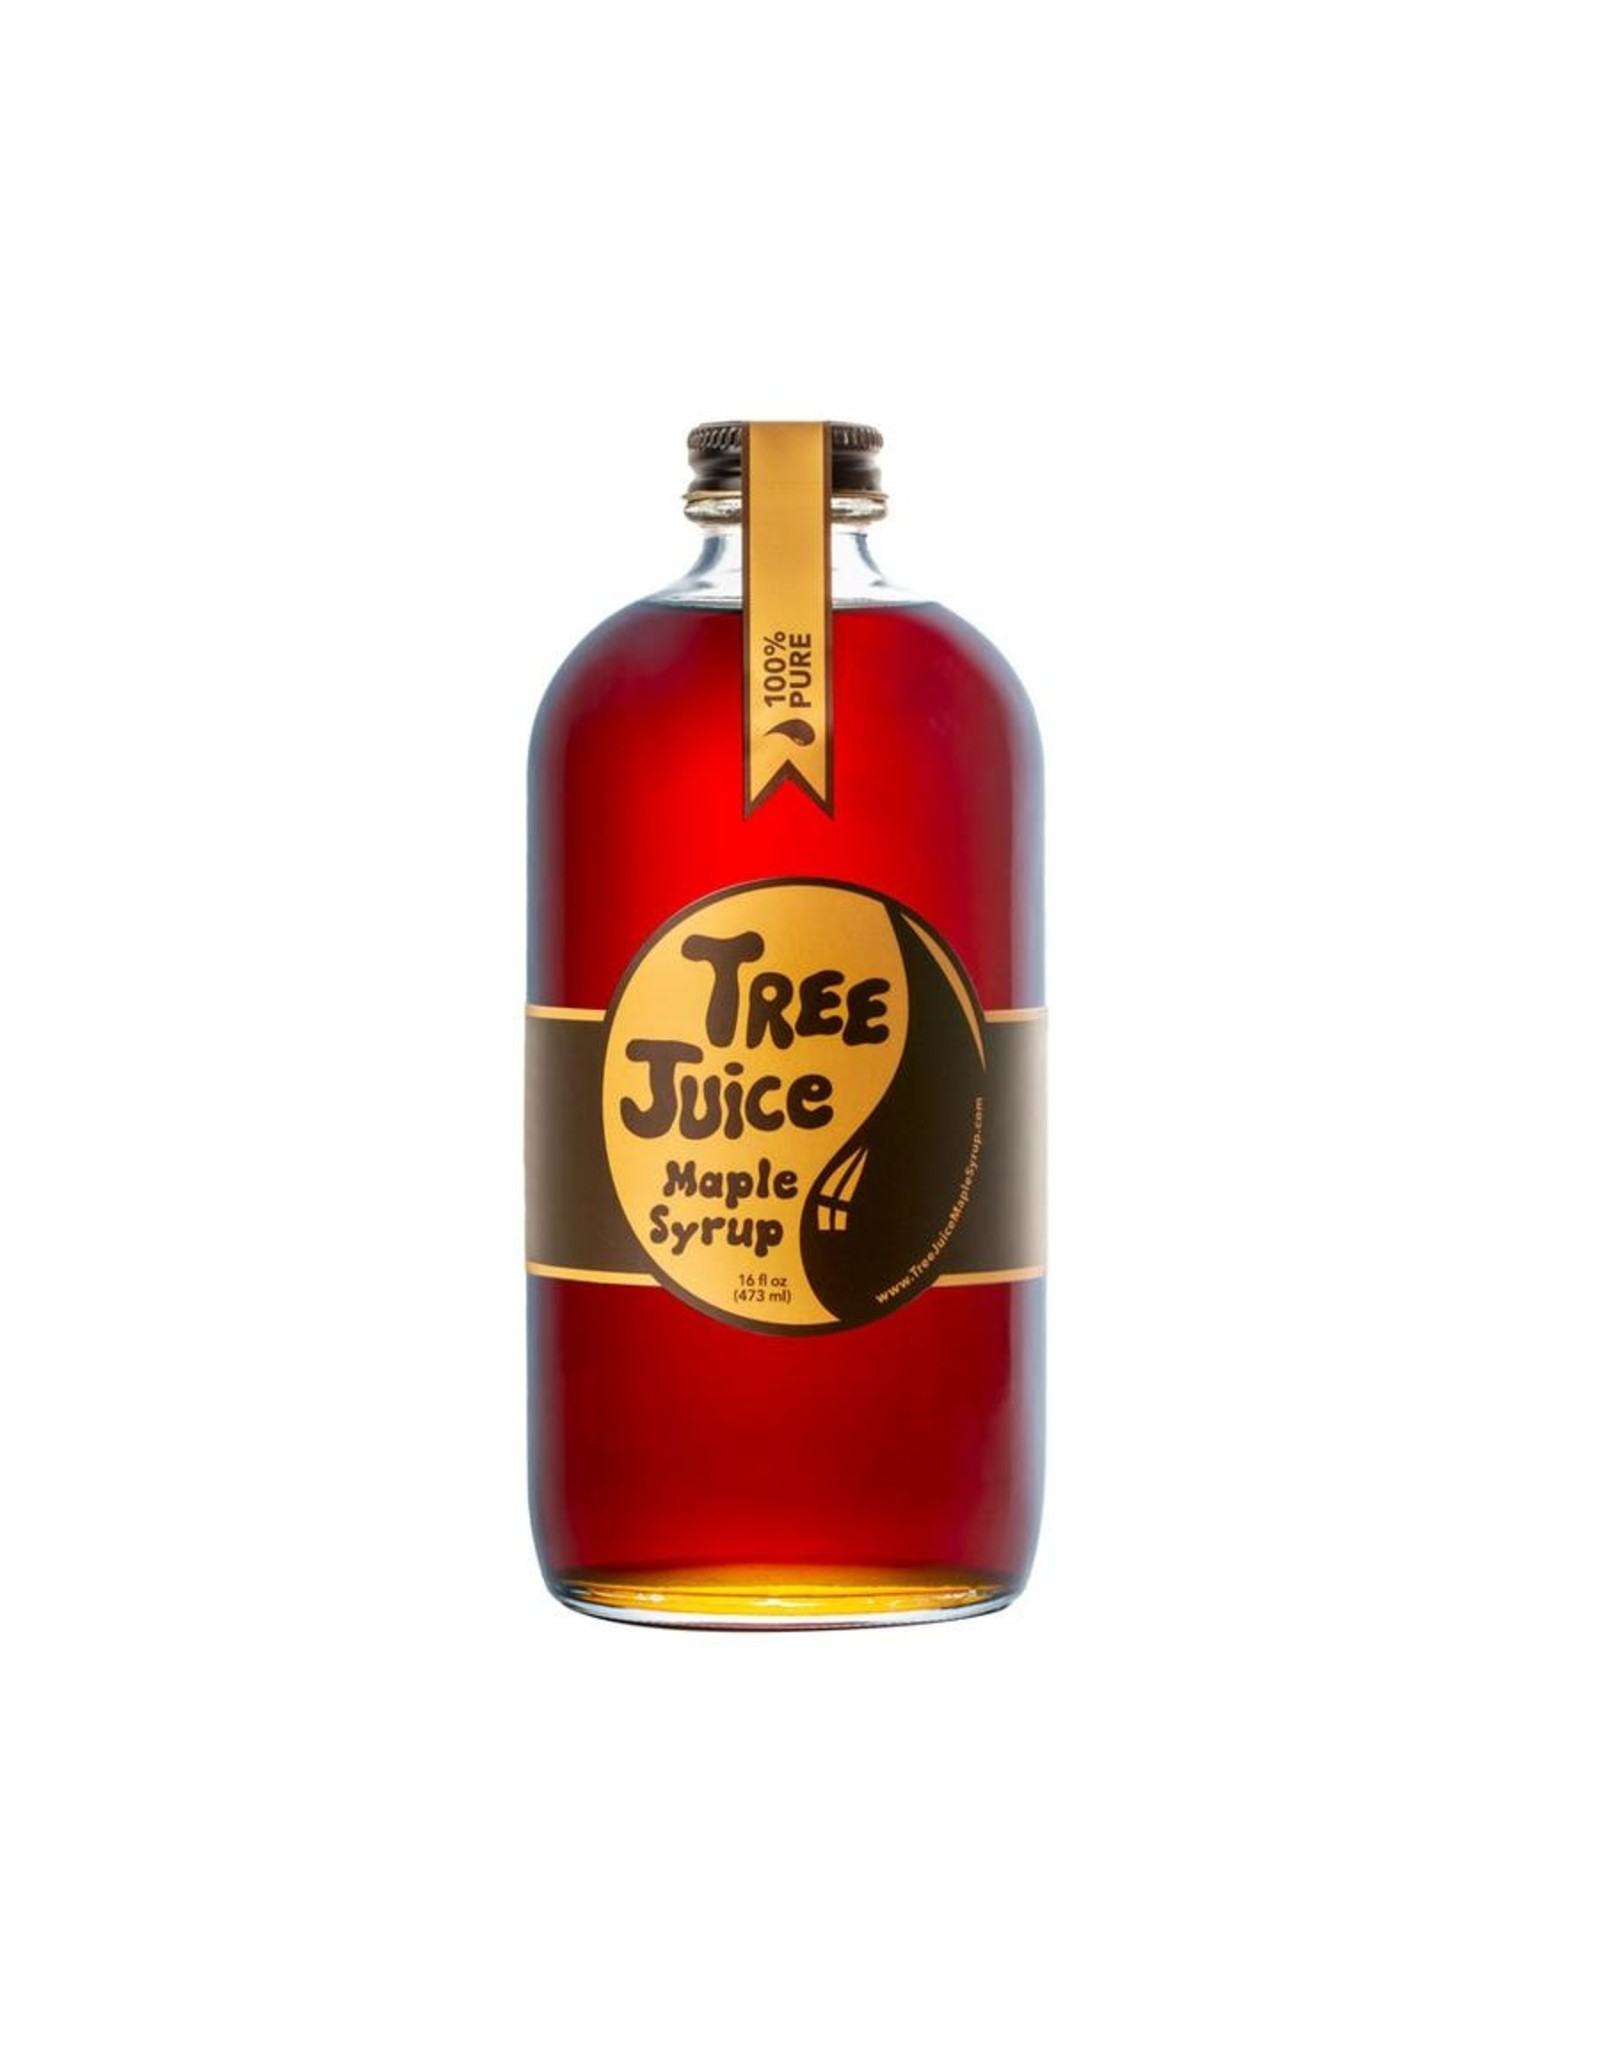 Tree Juice Maple Syrup 100% Pure Tree Juice Maple Syrup